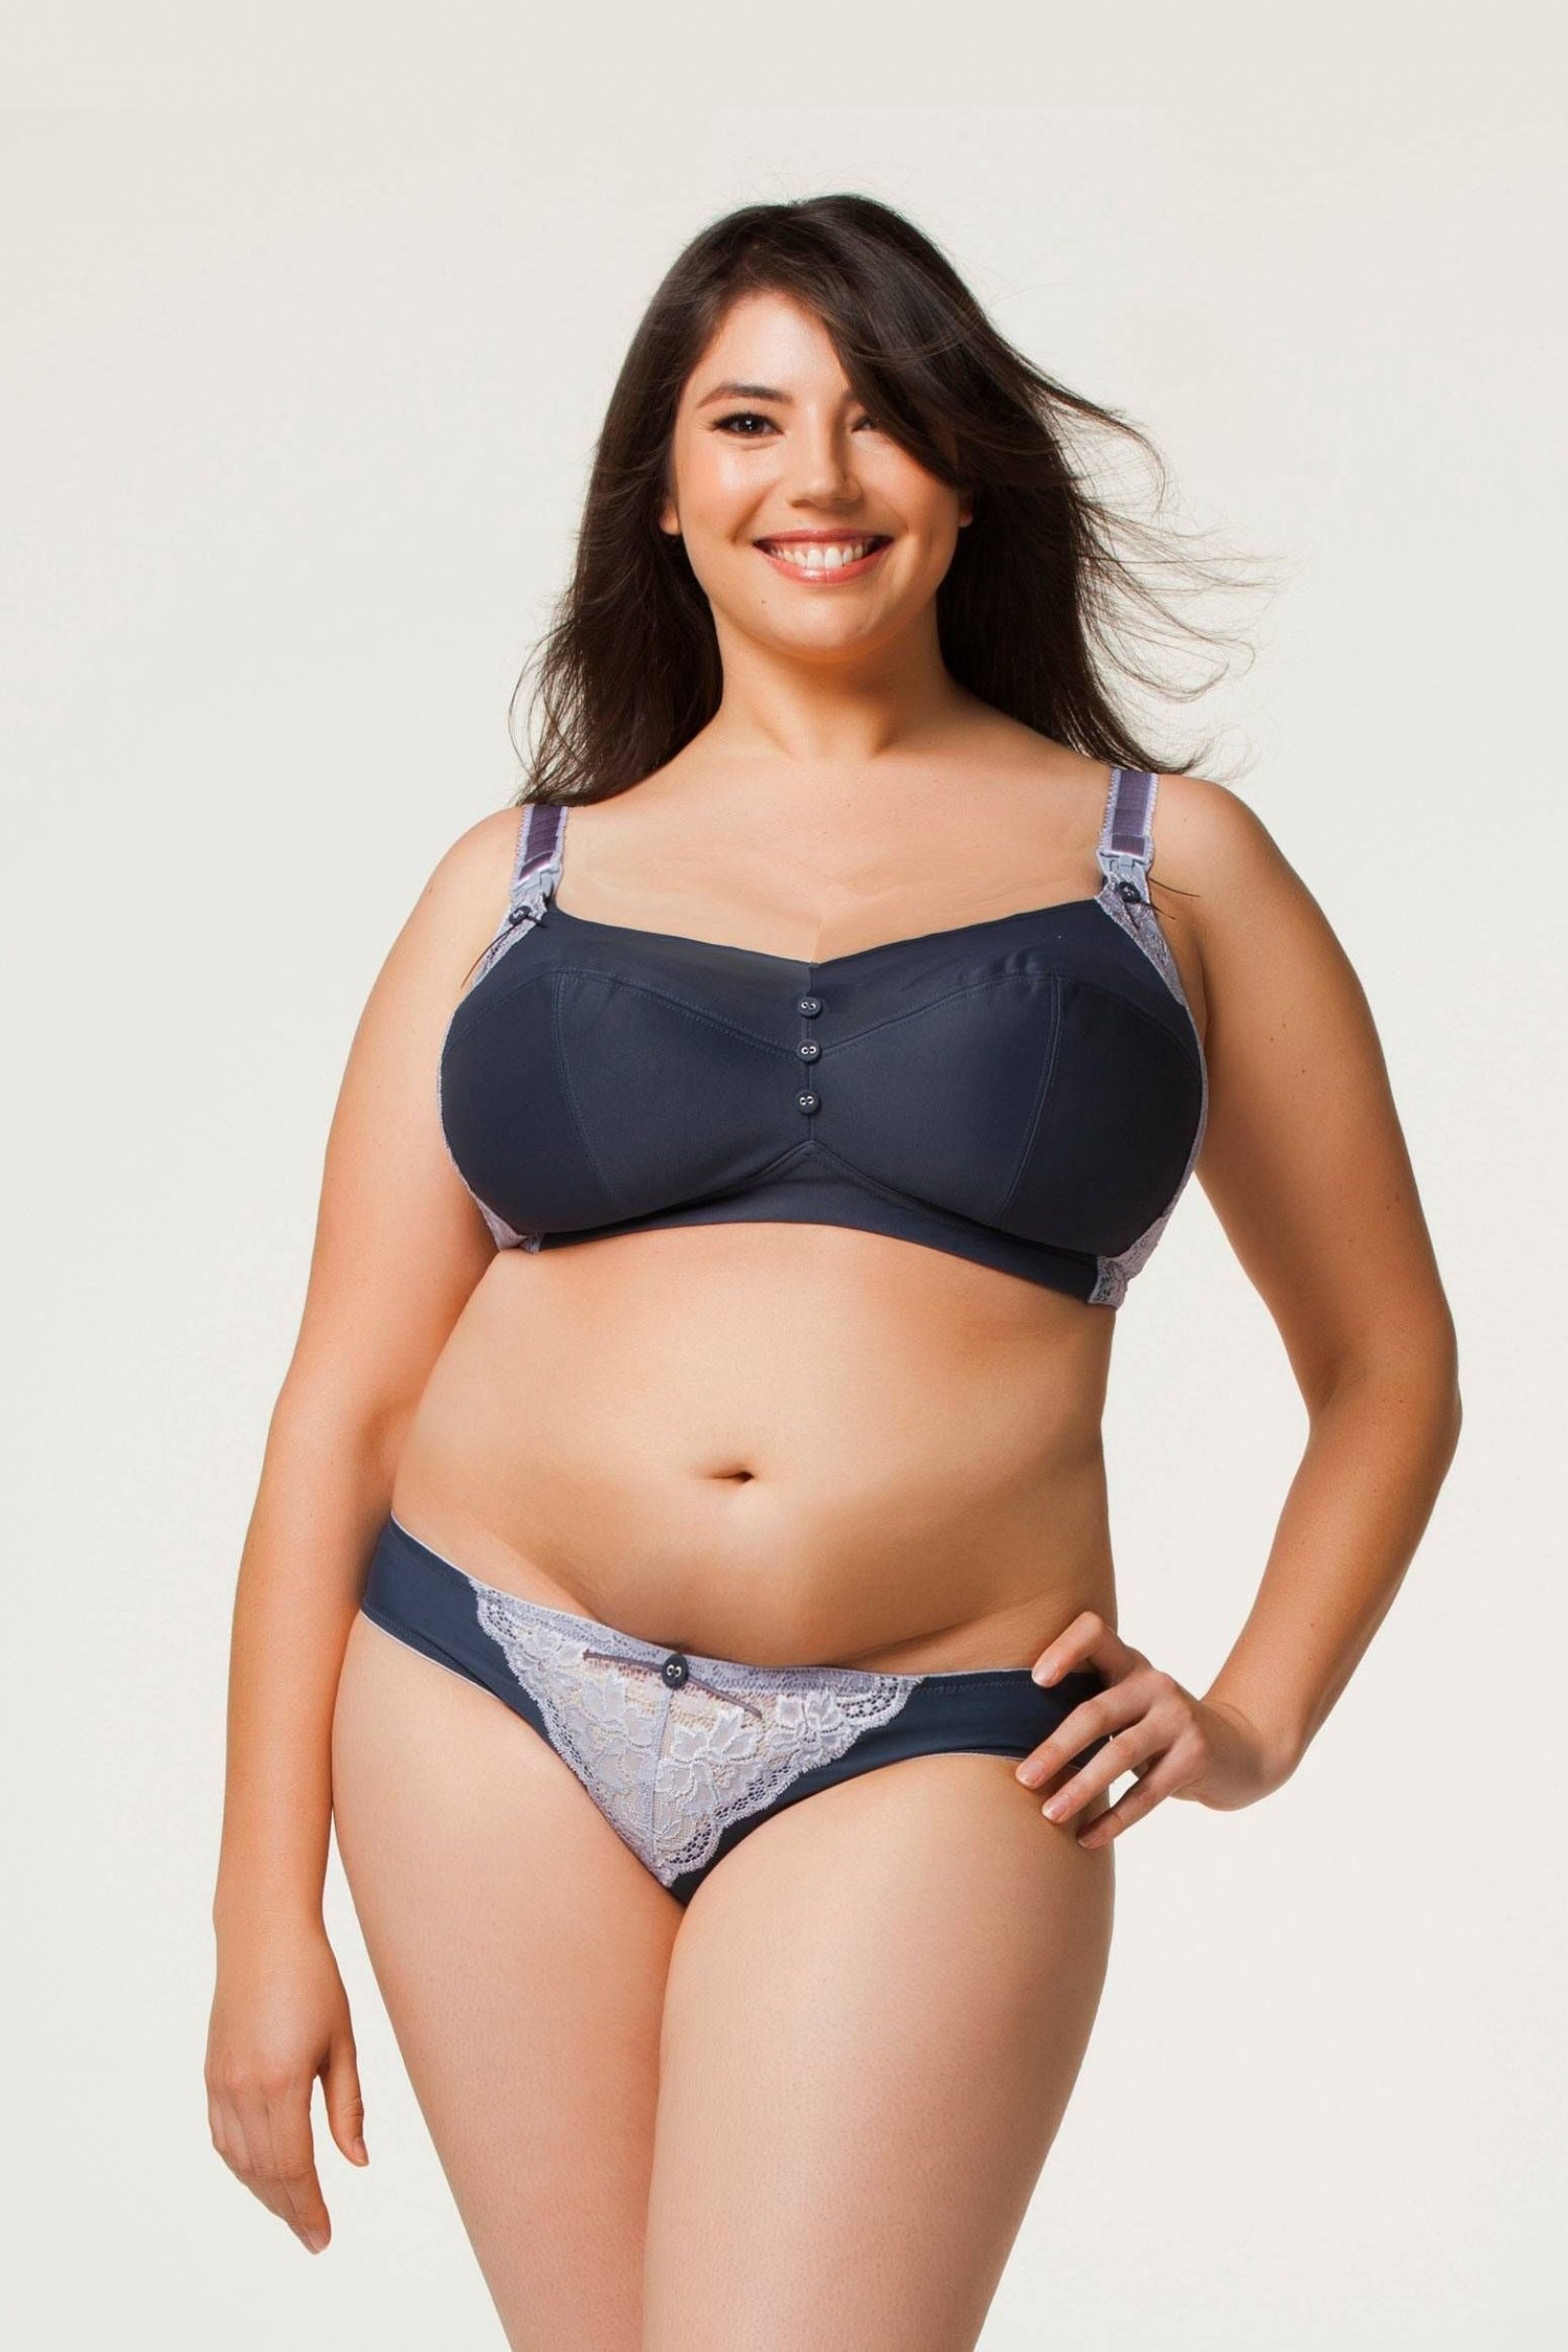 plus size bra: the perfect support to youth breasts - styleskier